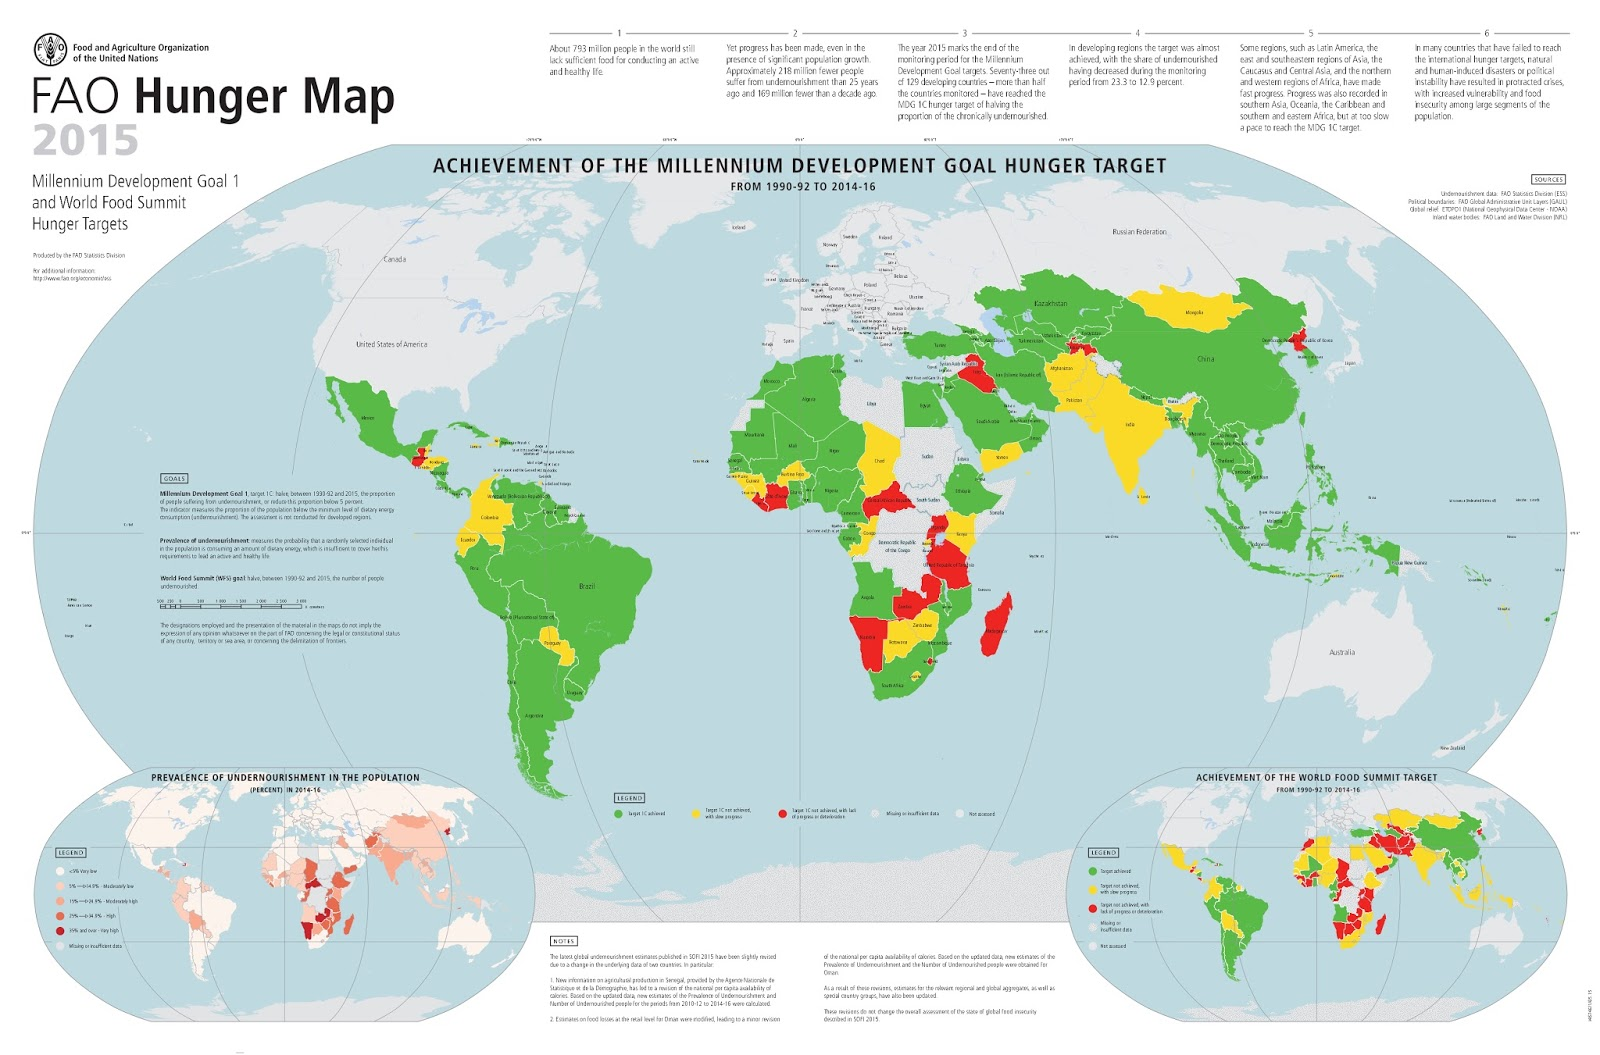 FAO Hunger Map (2015)